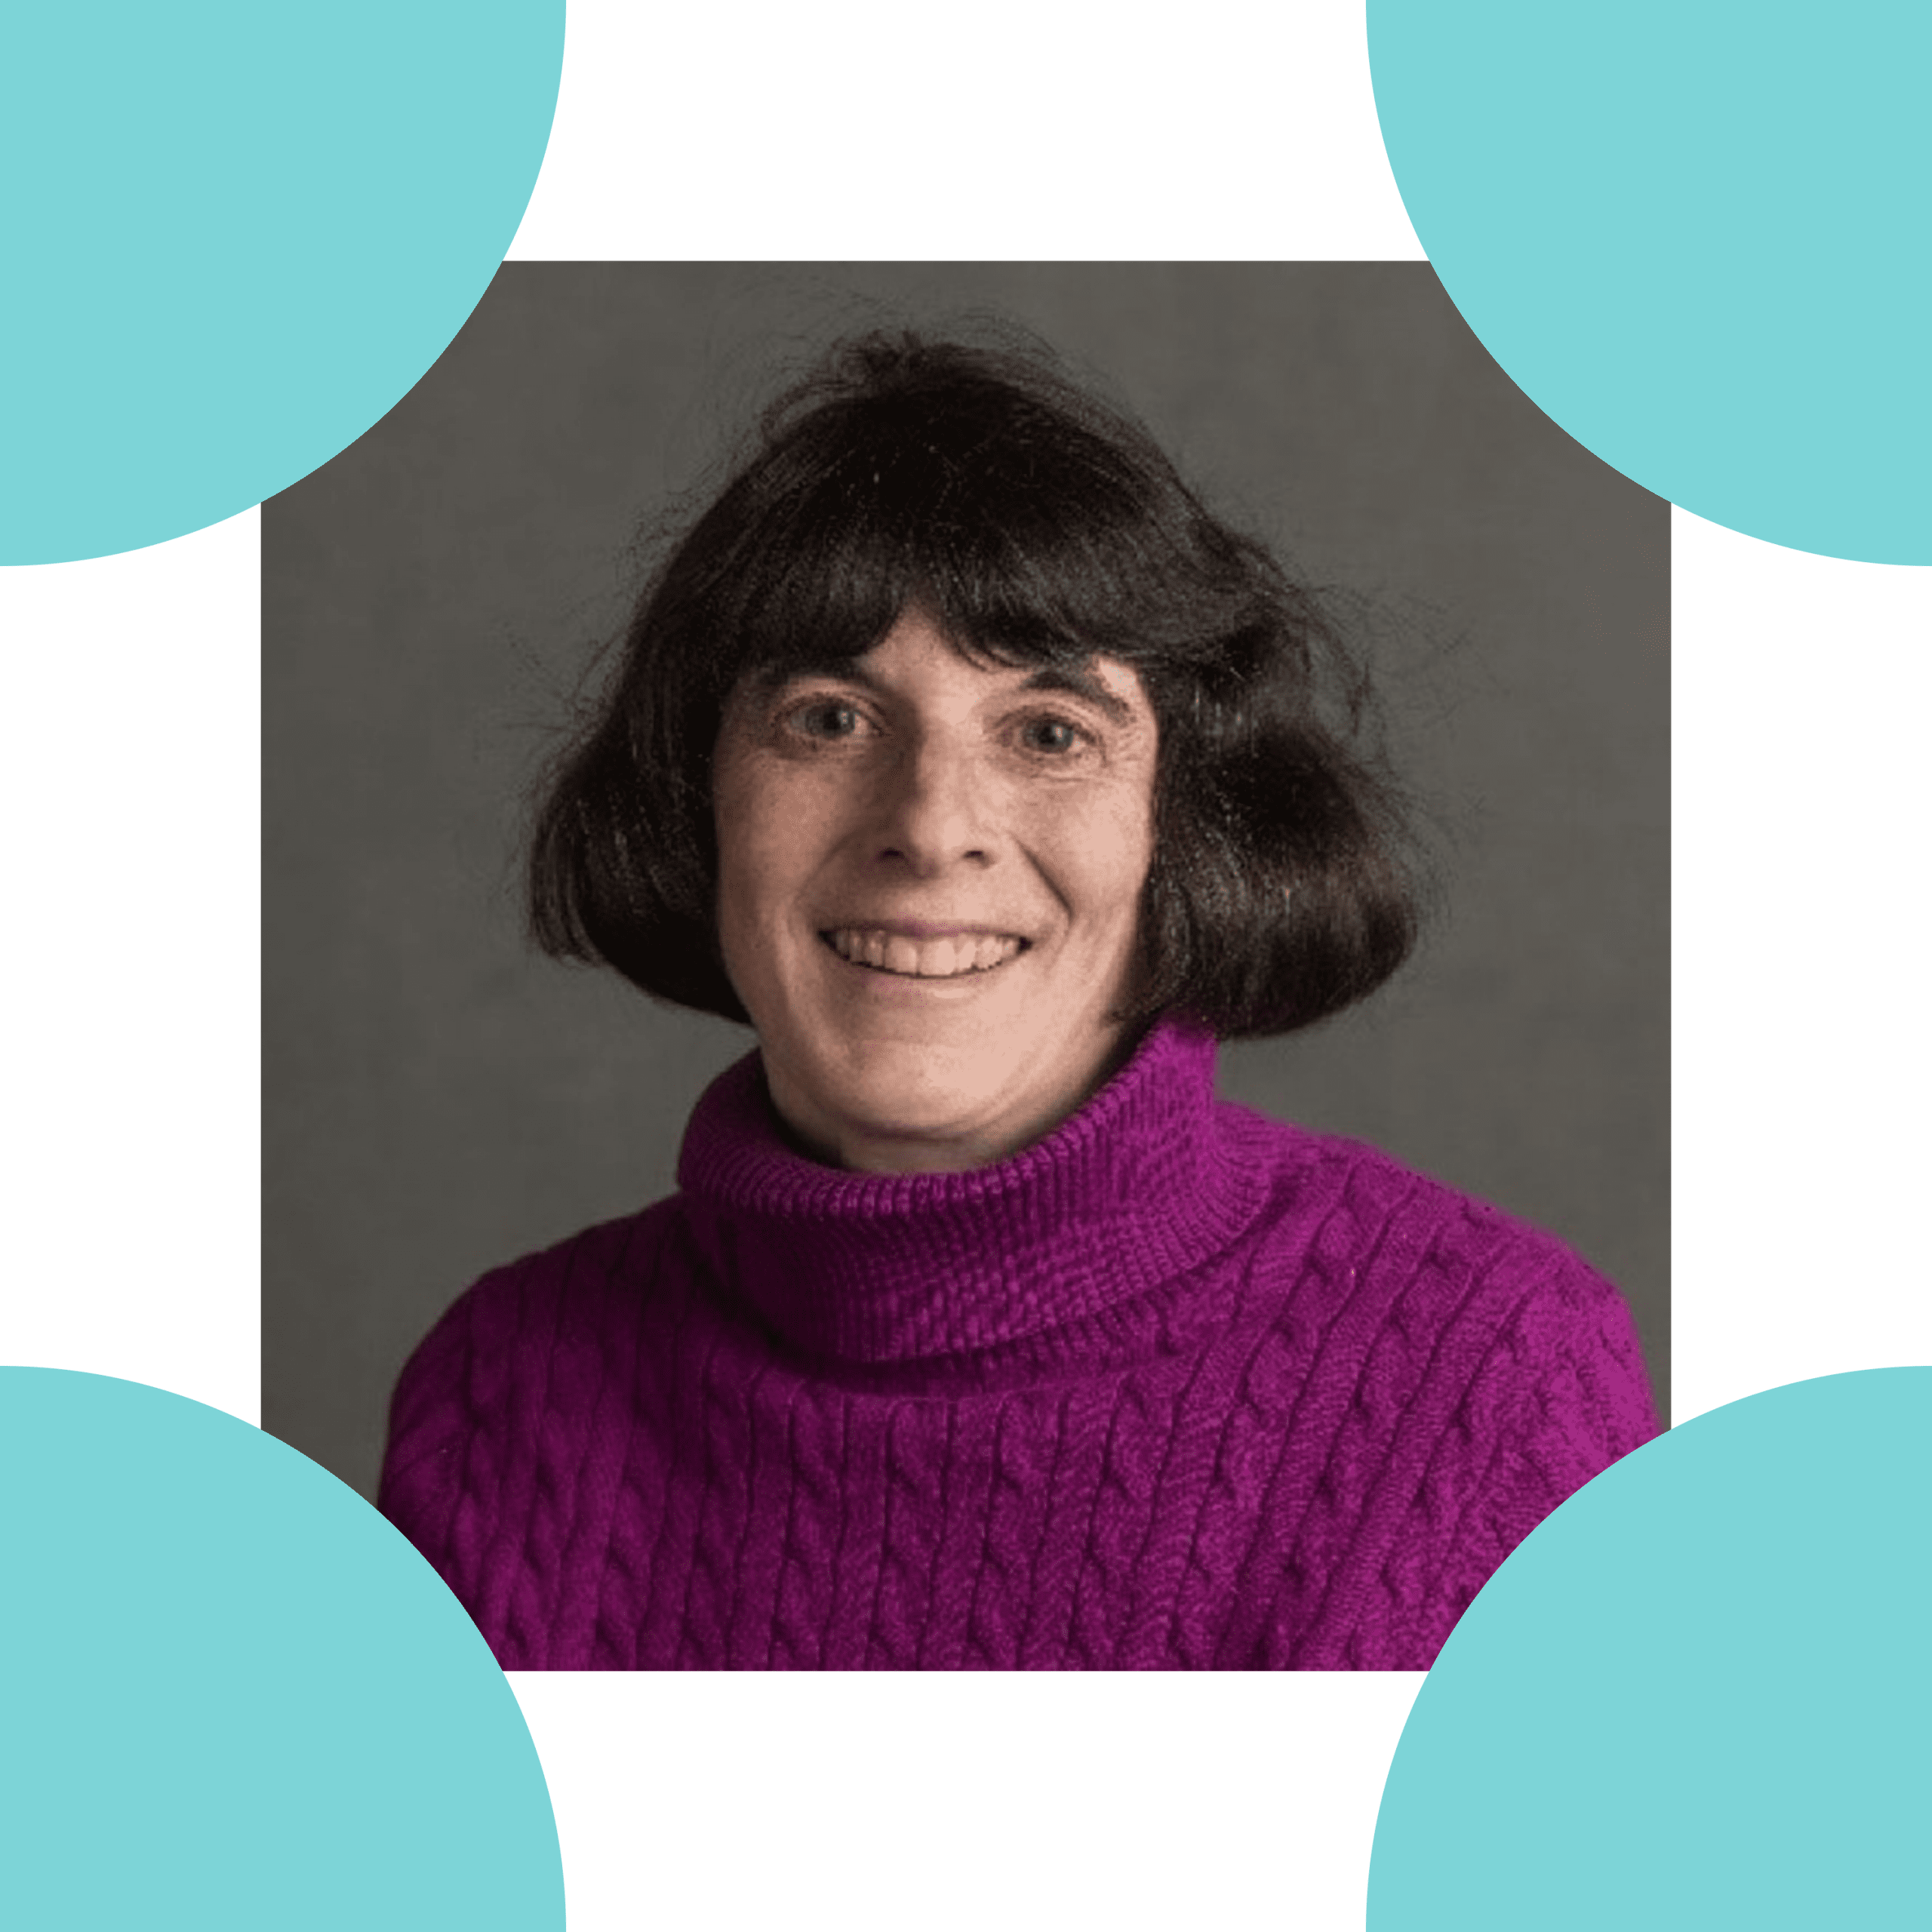 Image is a headshot of Amy Dworsky, set inside the four corners of the ReSHAPING logo.